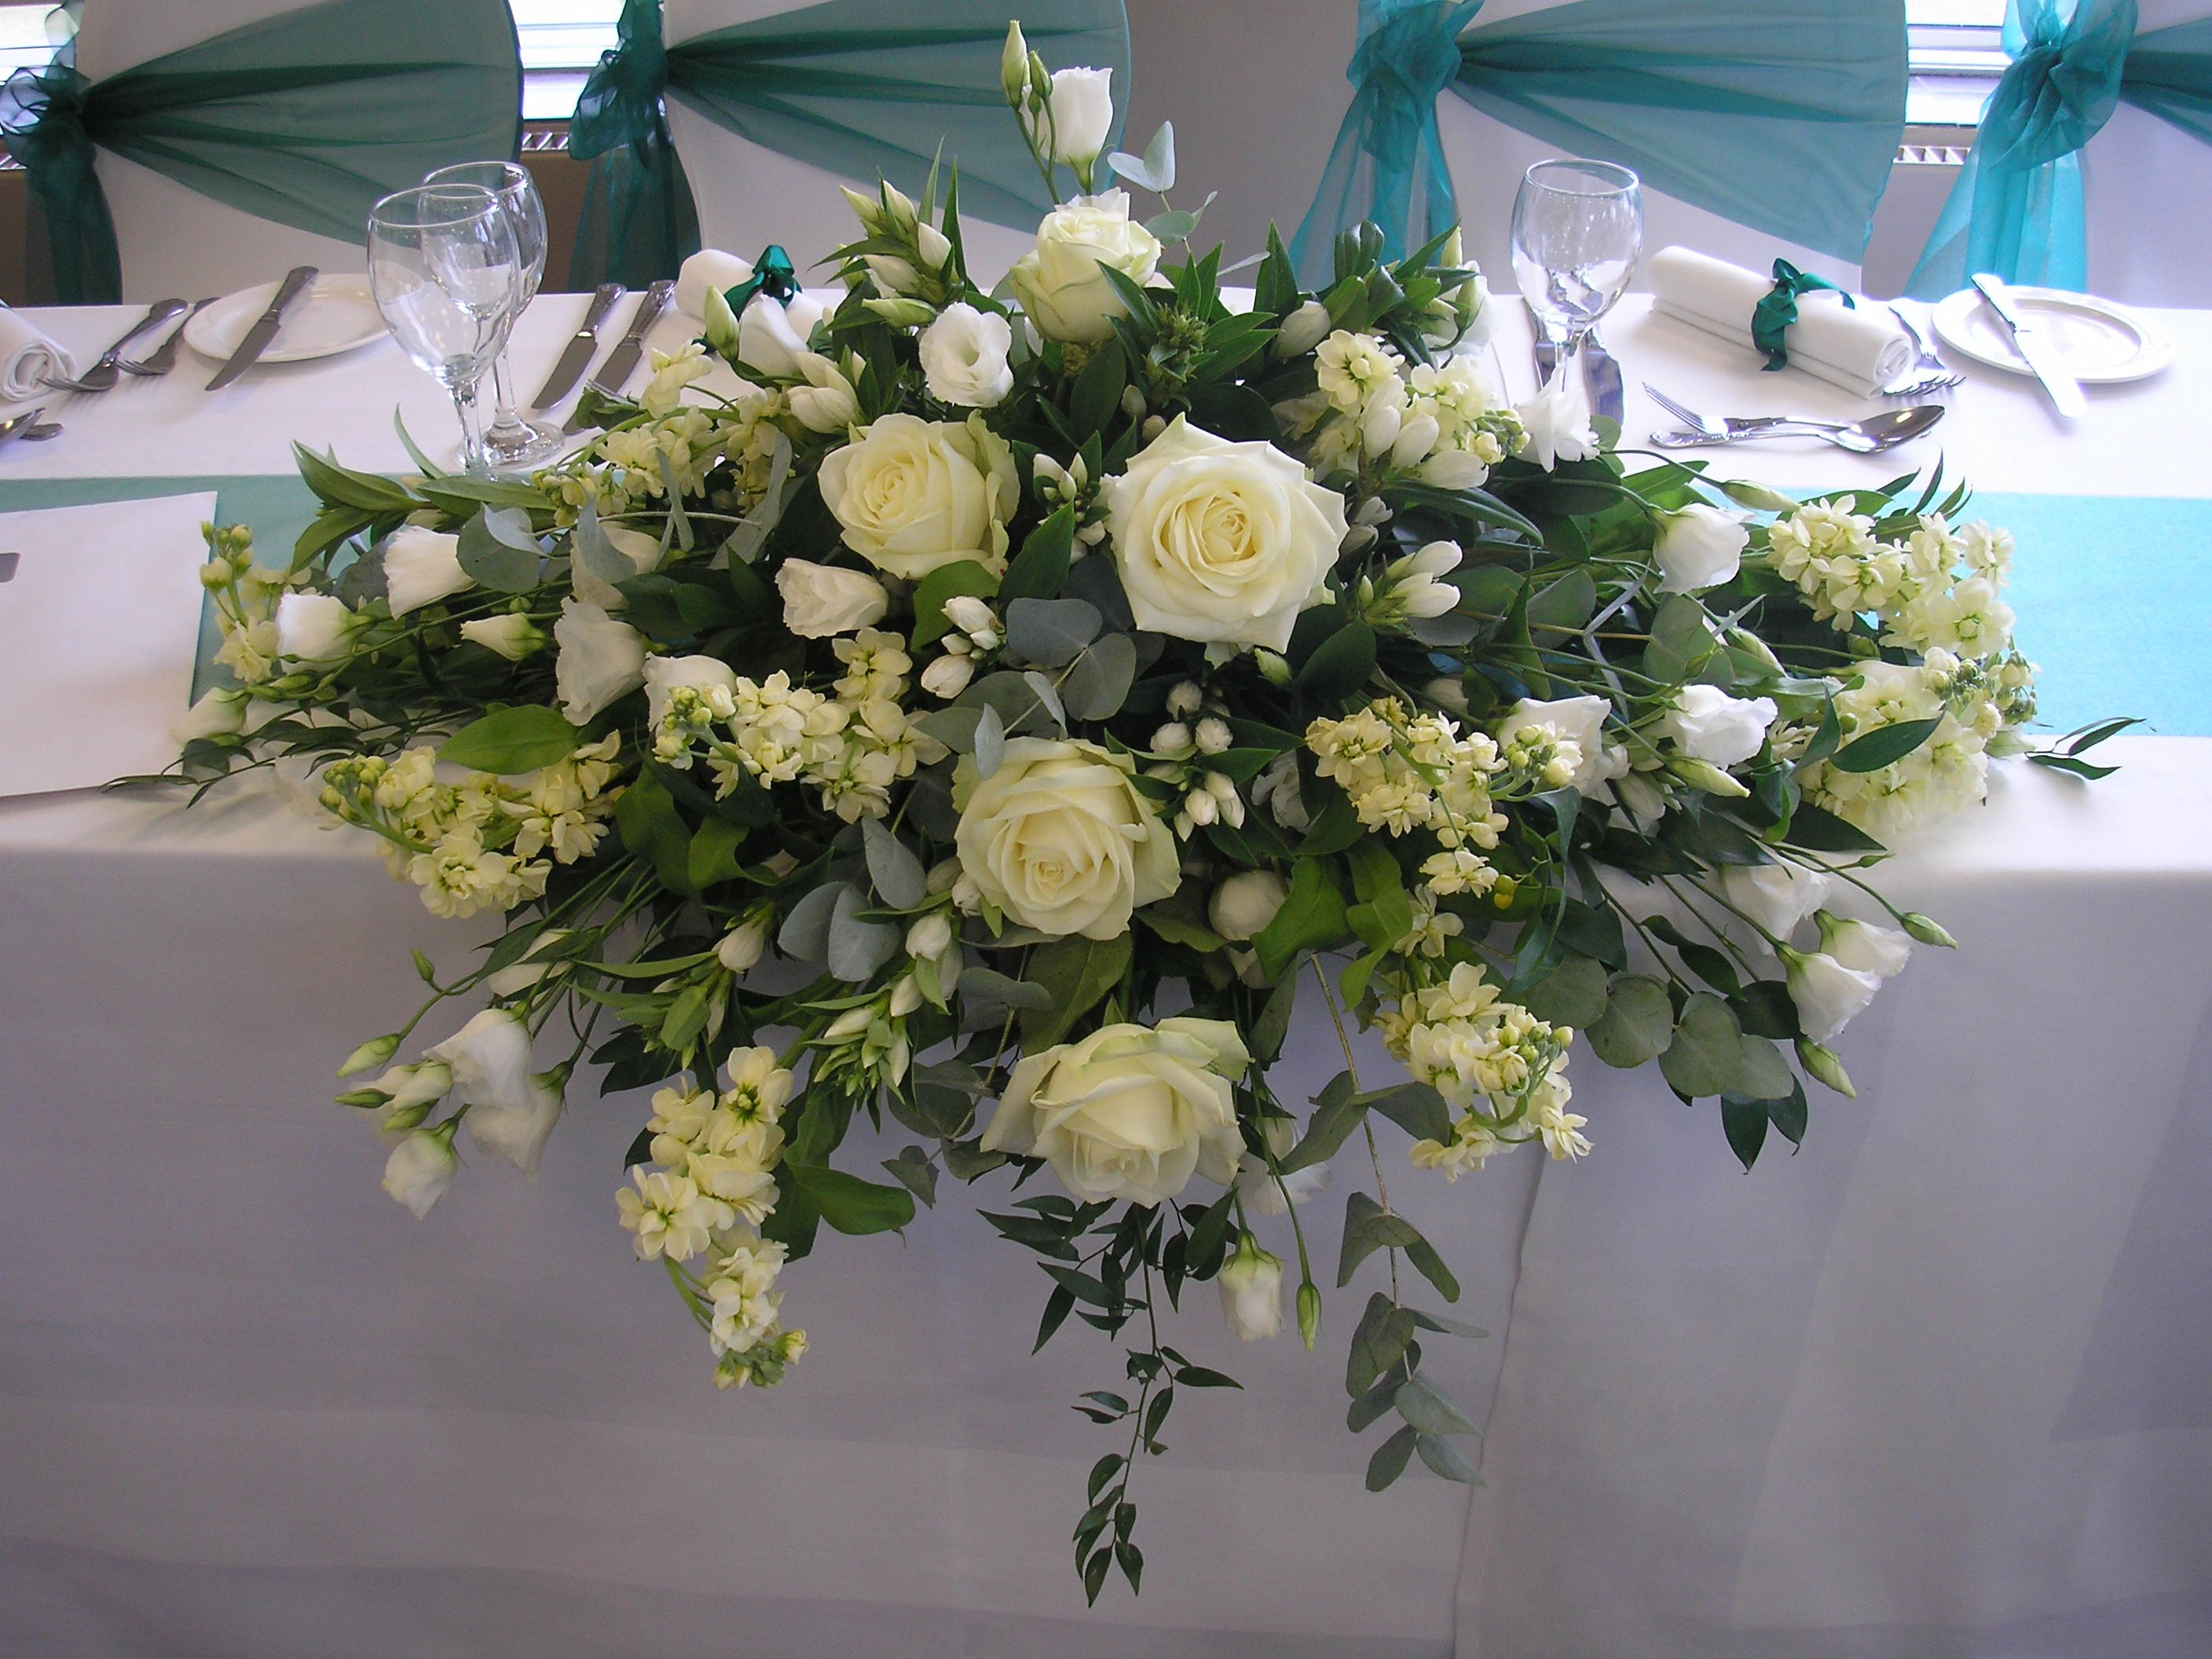 Top table display of Roses, Stocks, Lisianthus and eucalyptus.